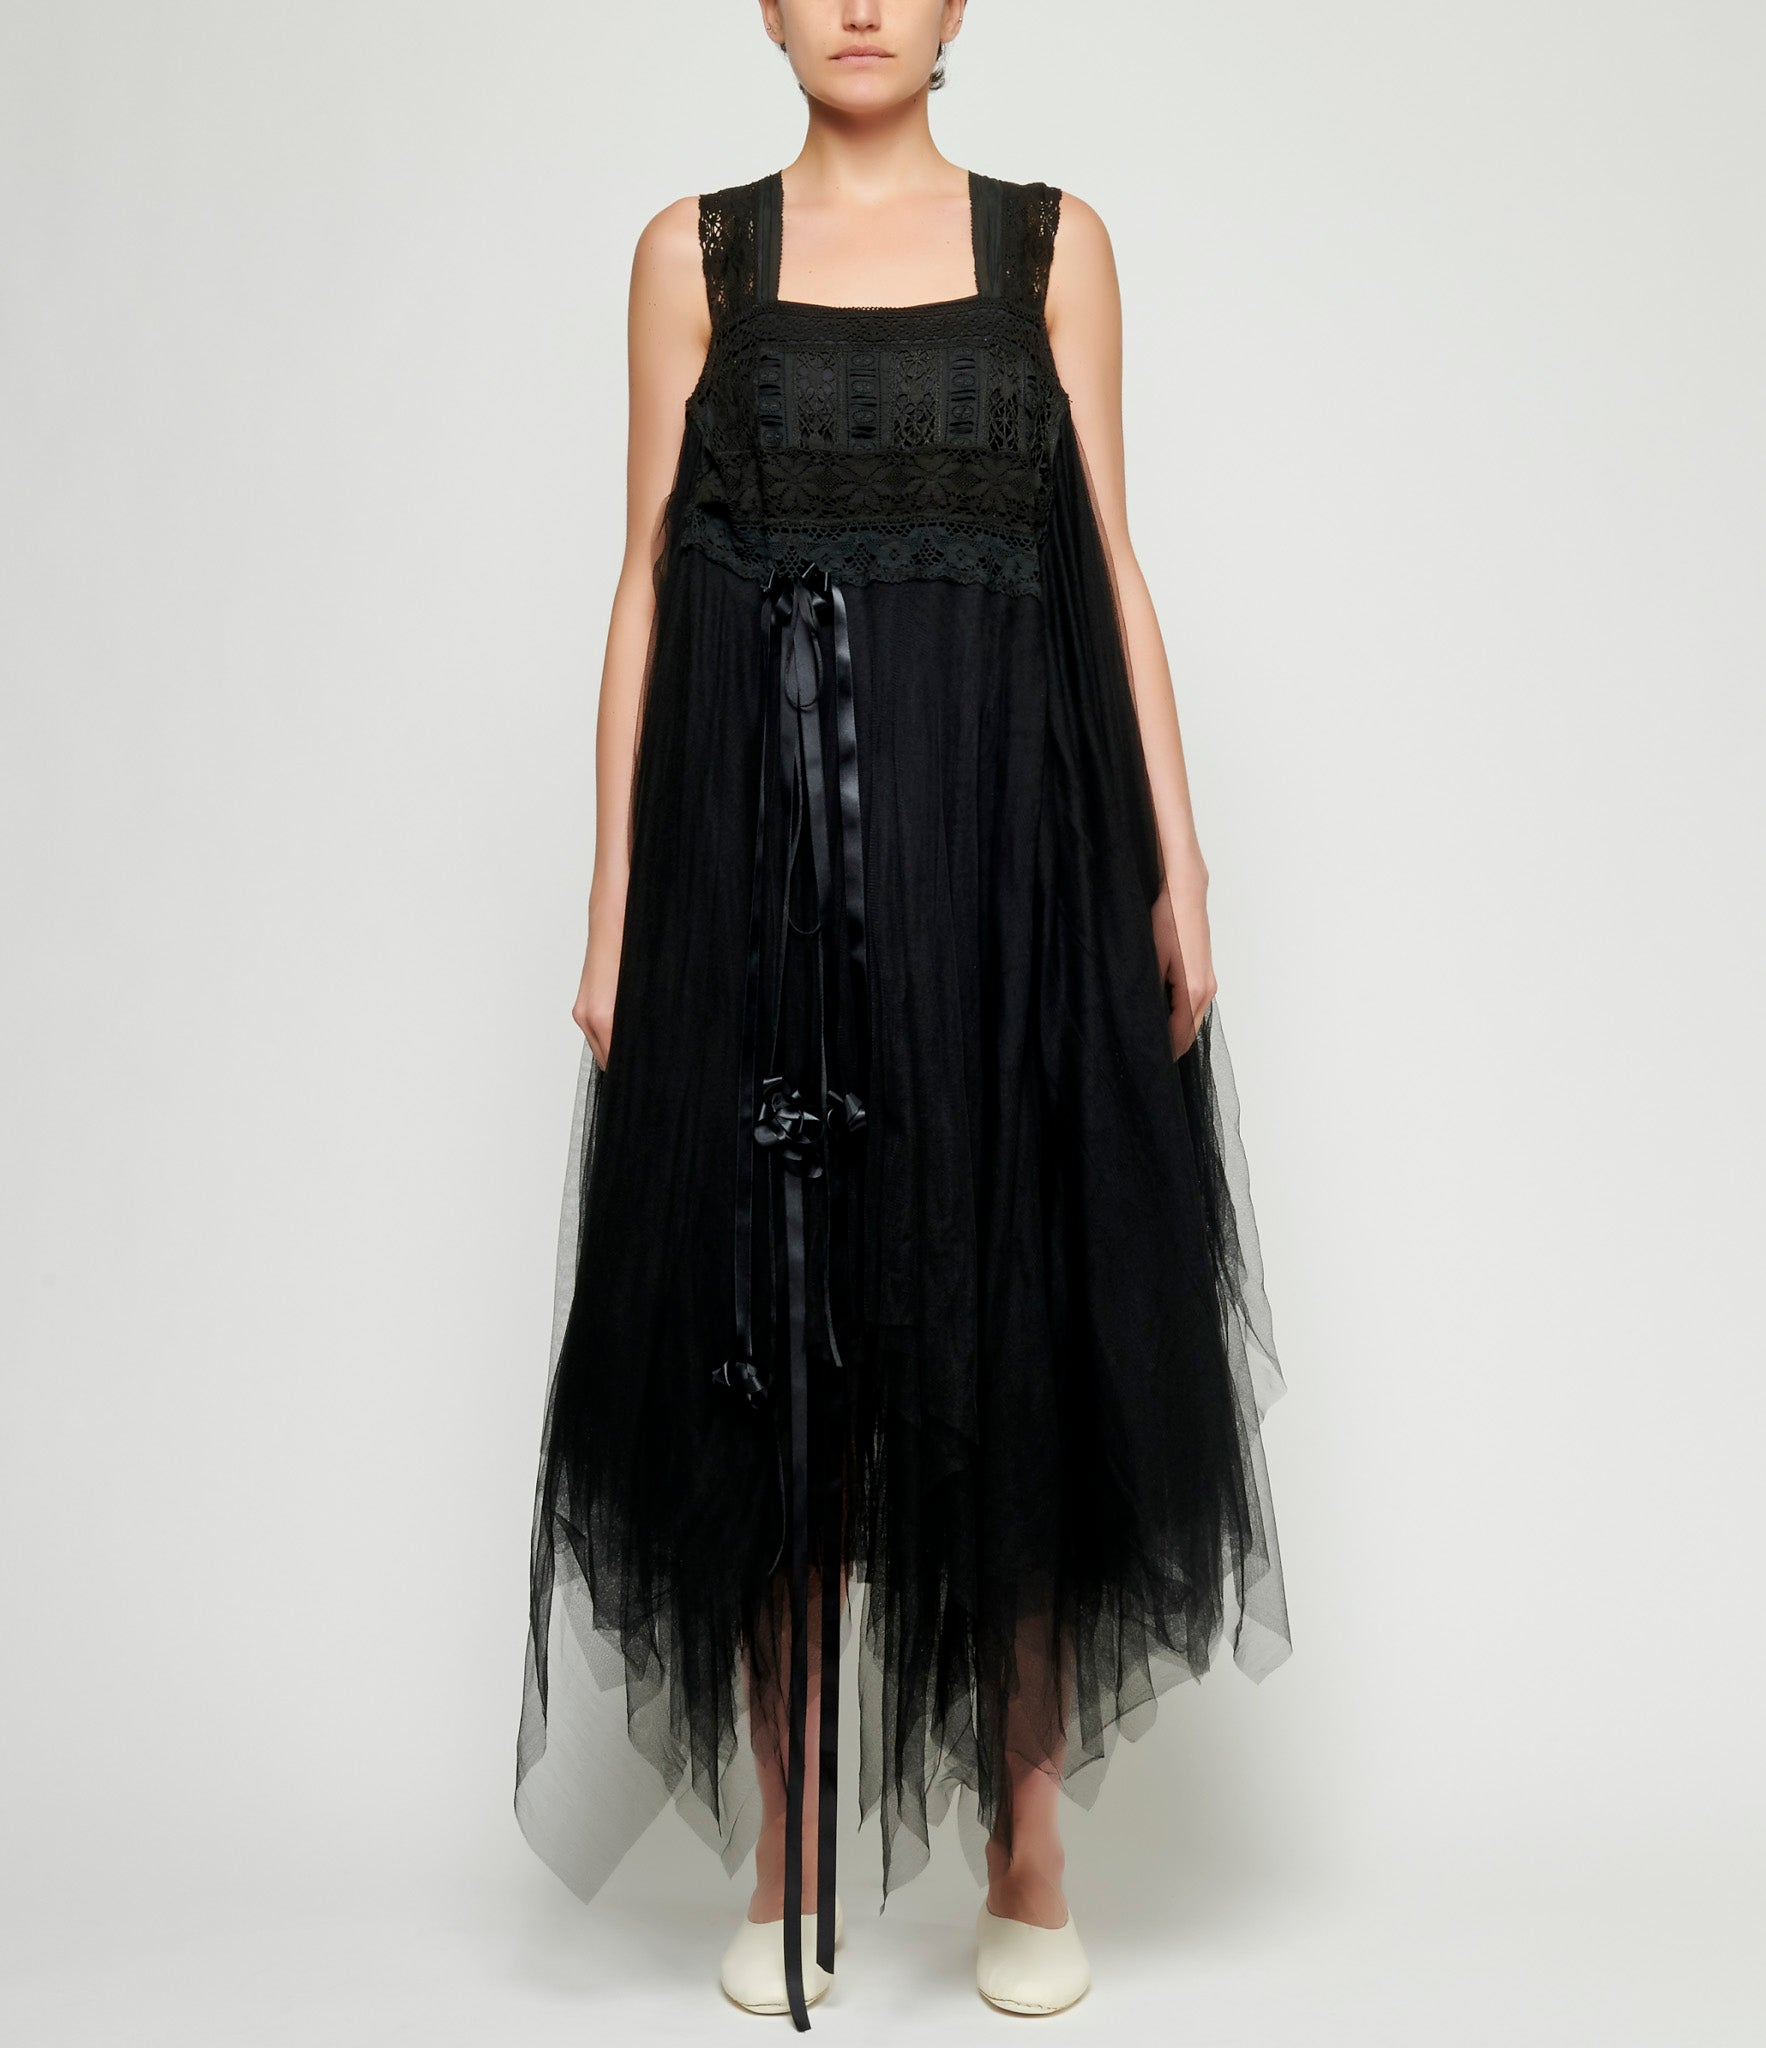 Marc Le Bihan Lynn Sleeveless Lace Tulle Skirt Dress